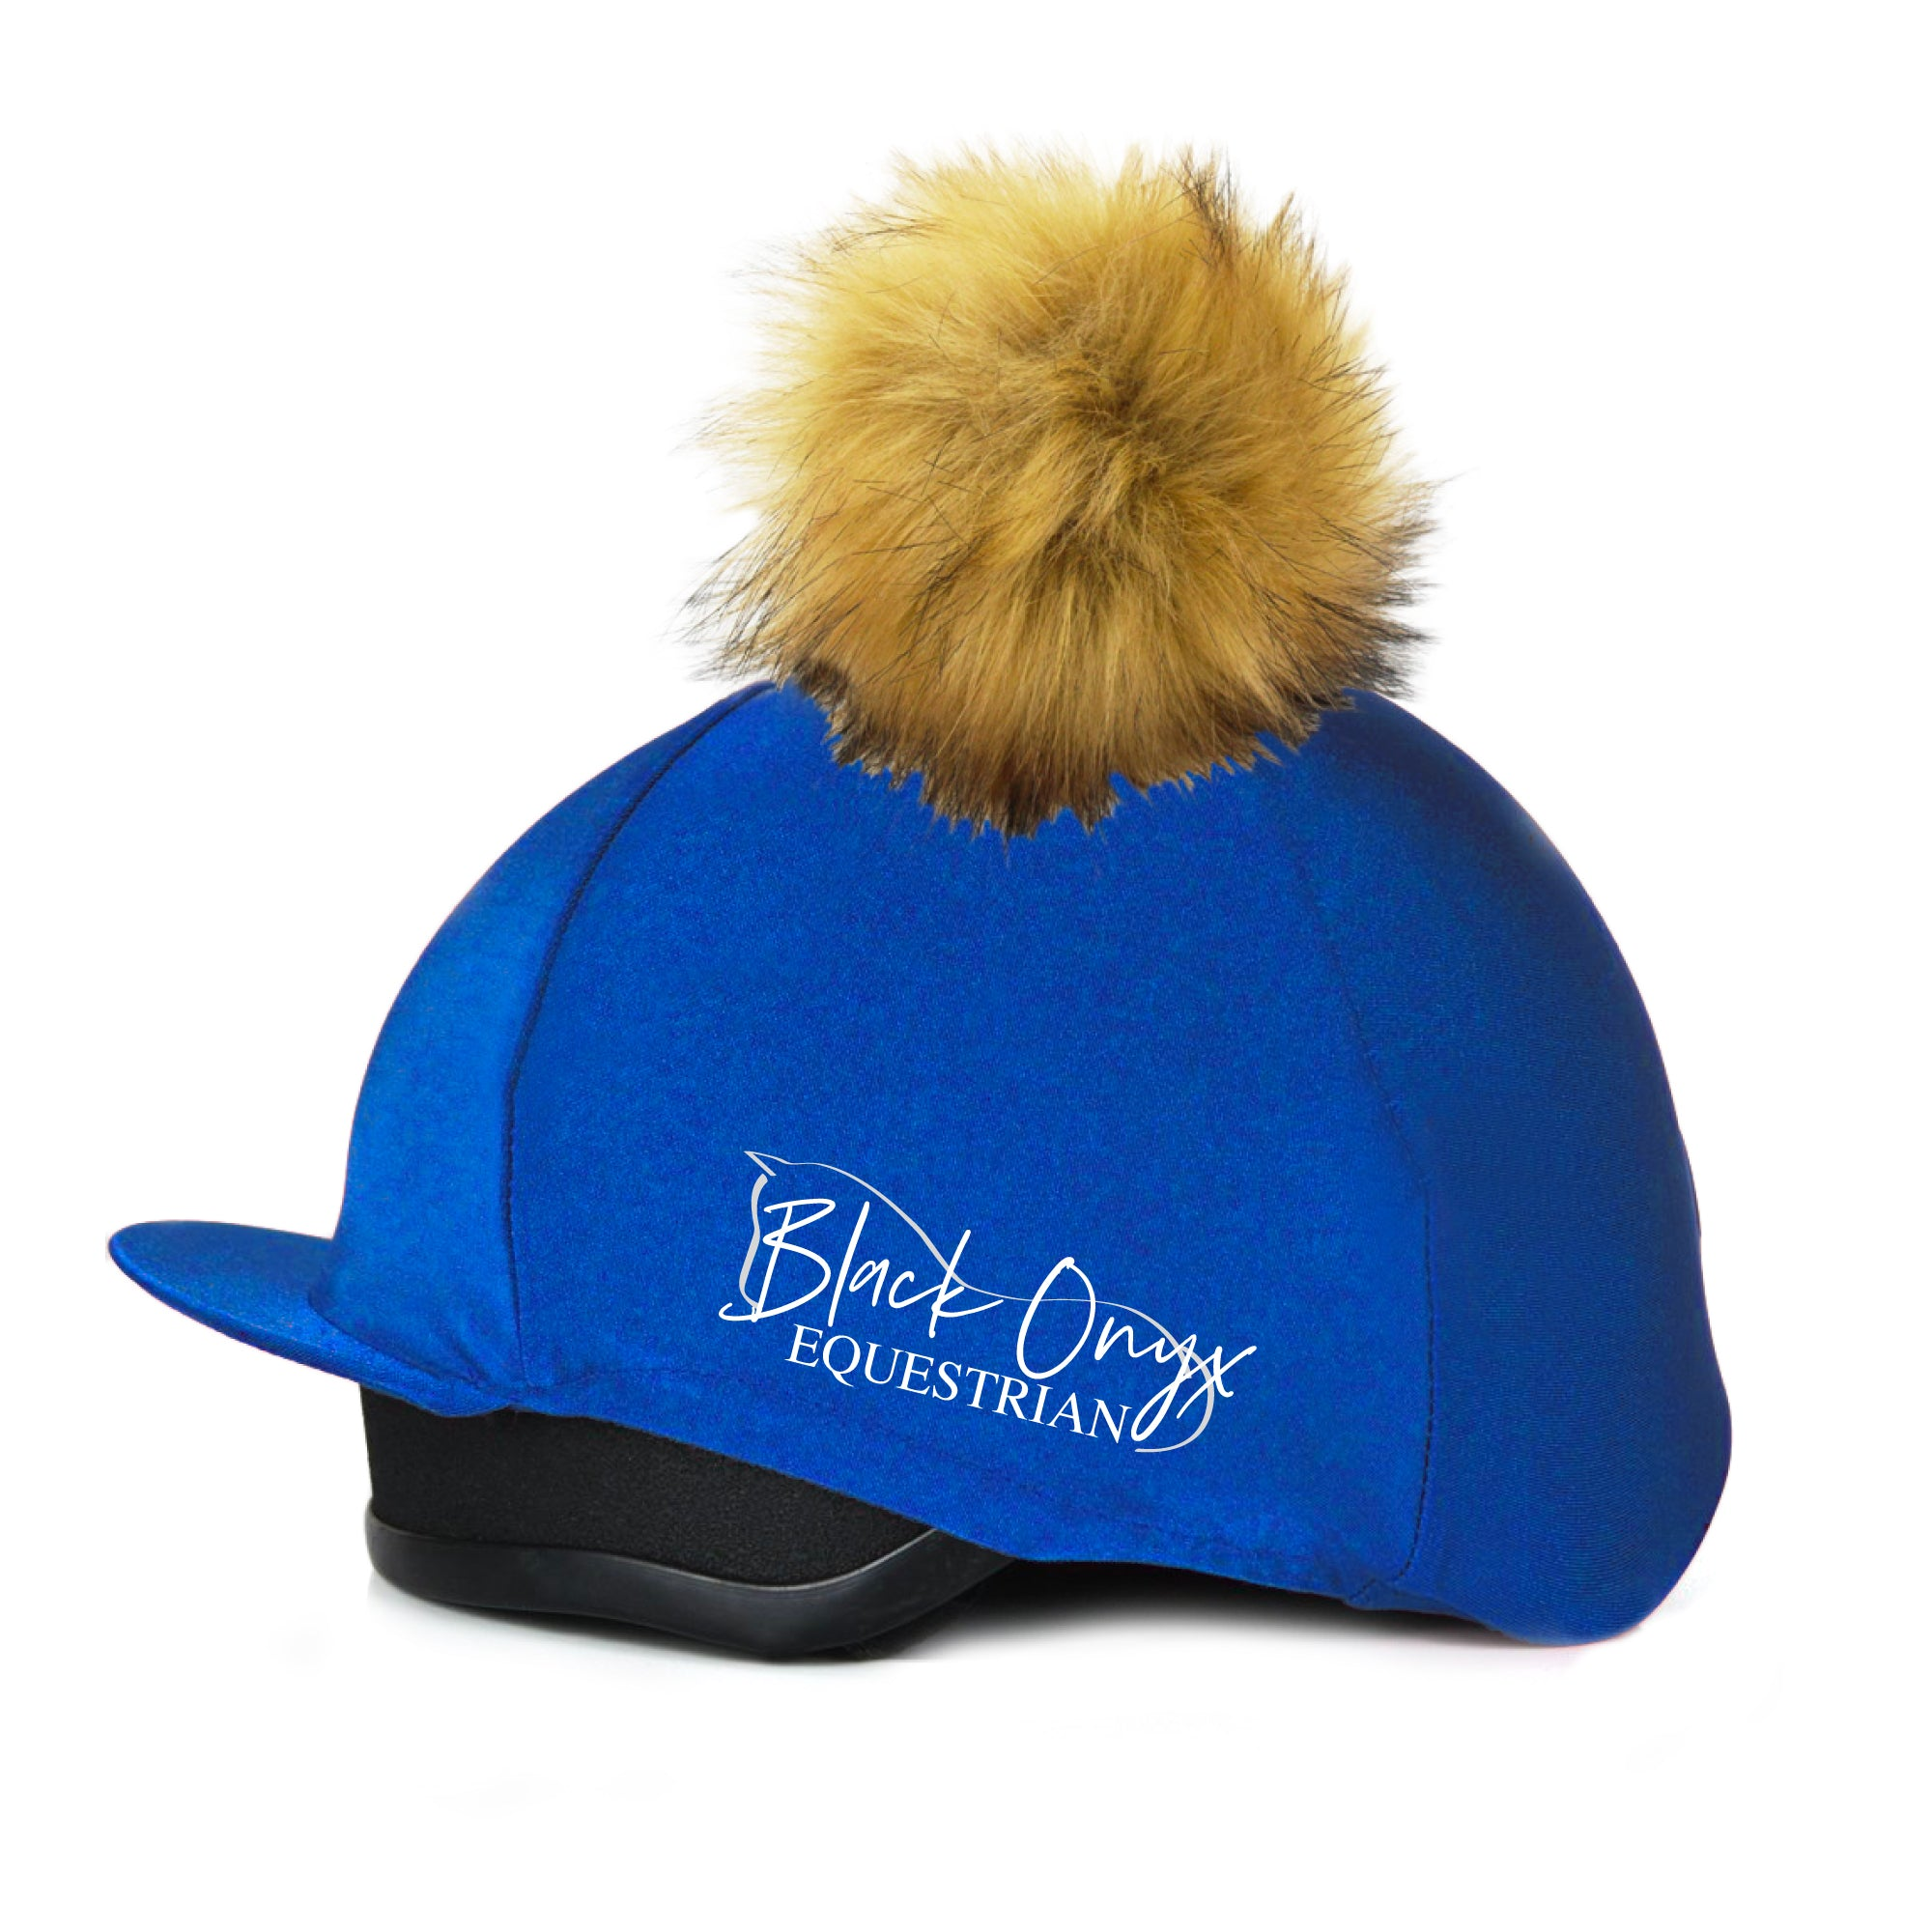 Faux Fur Pom Pom Hat Silk Cover - Royal Blue – Black Onyx Equestrian f24fbe7e89d